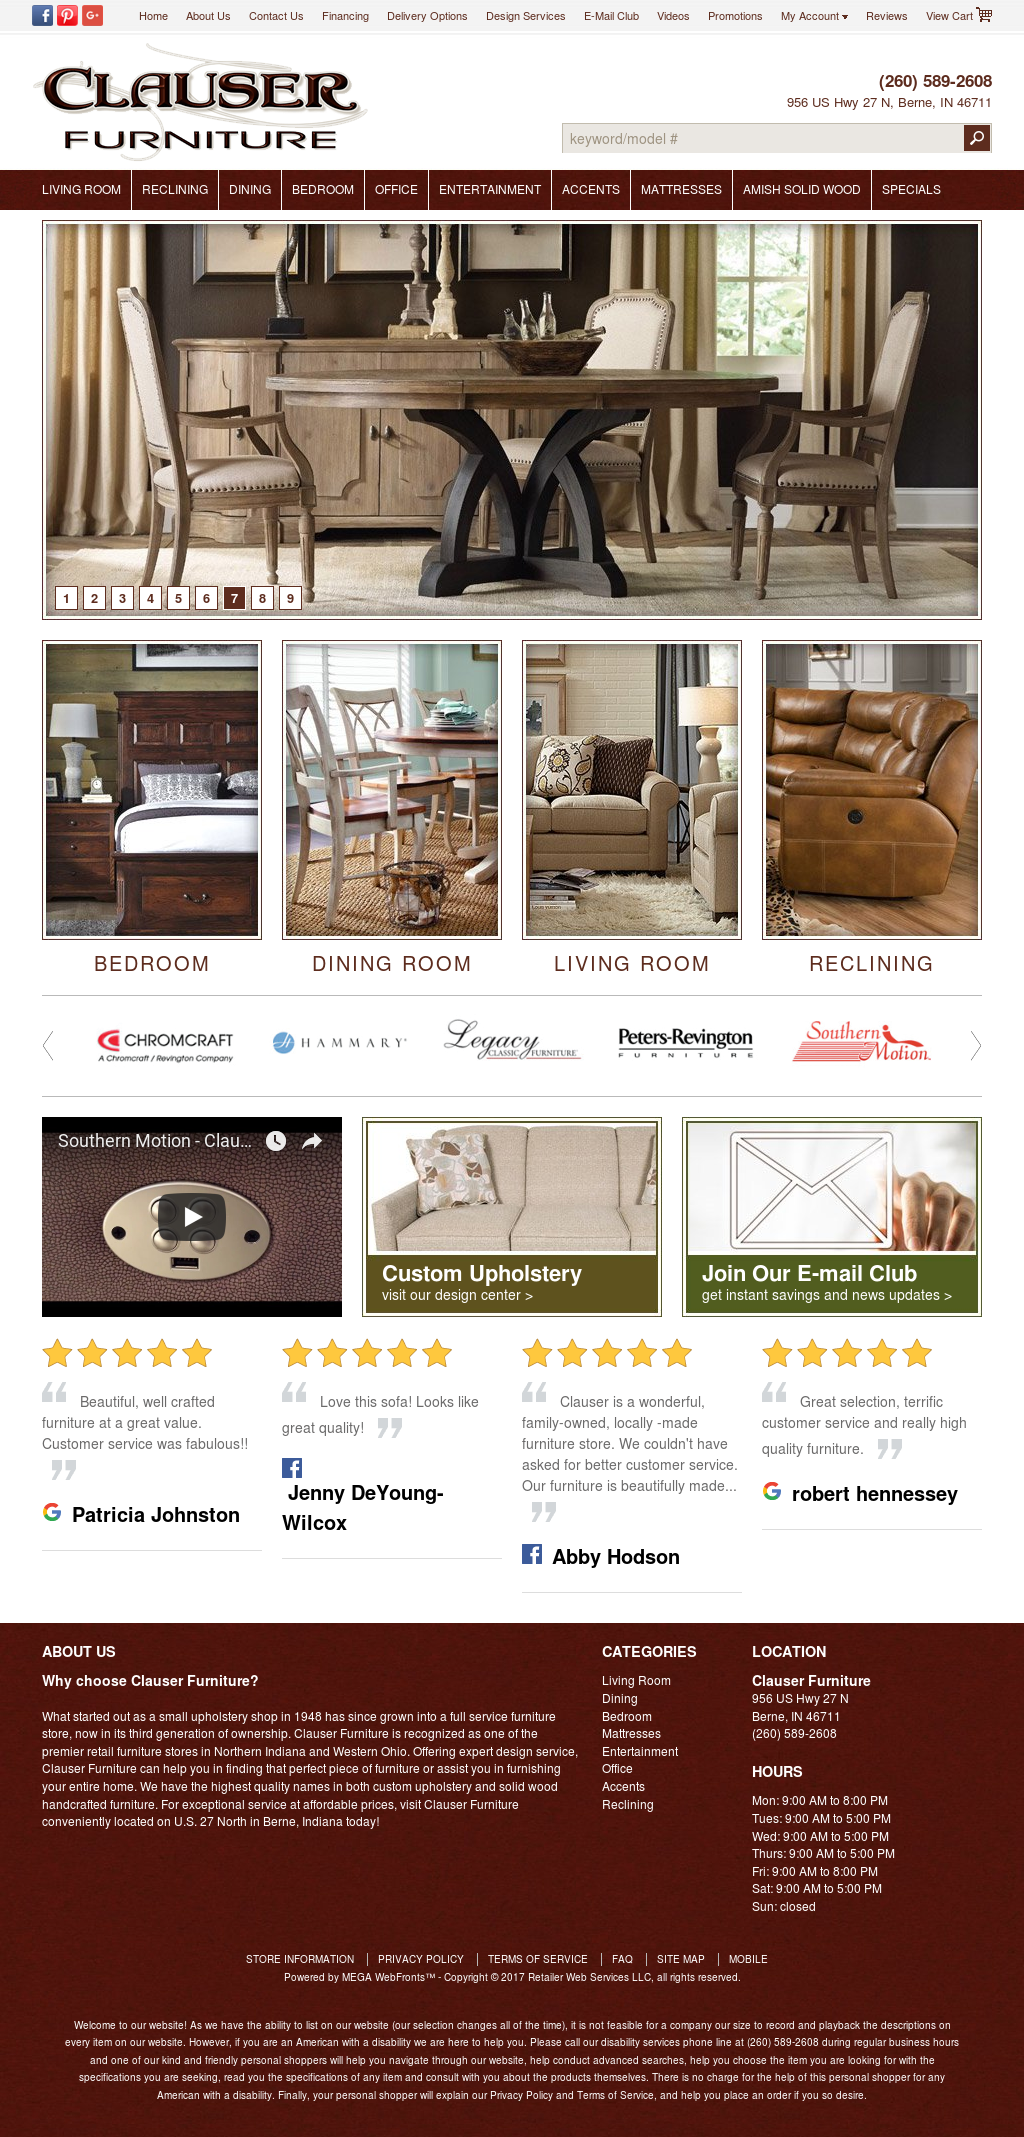 Clauser Furniture Website History